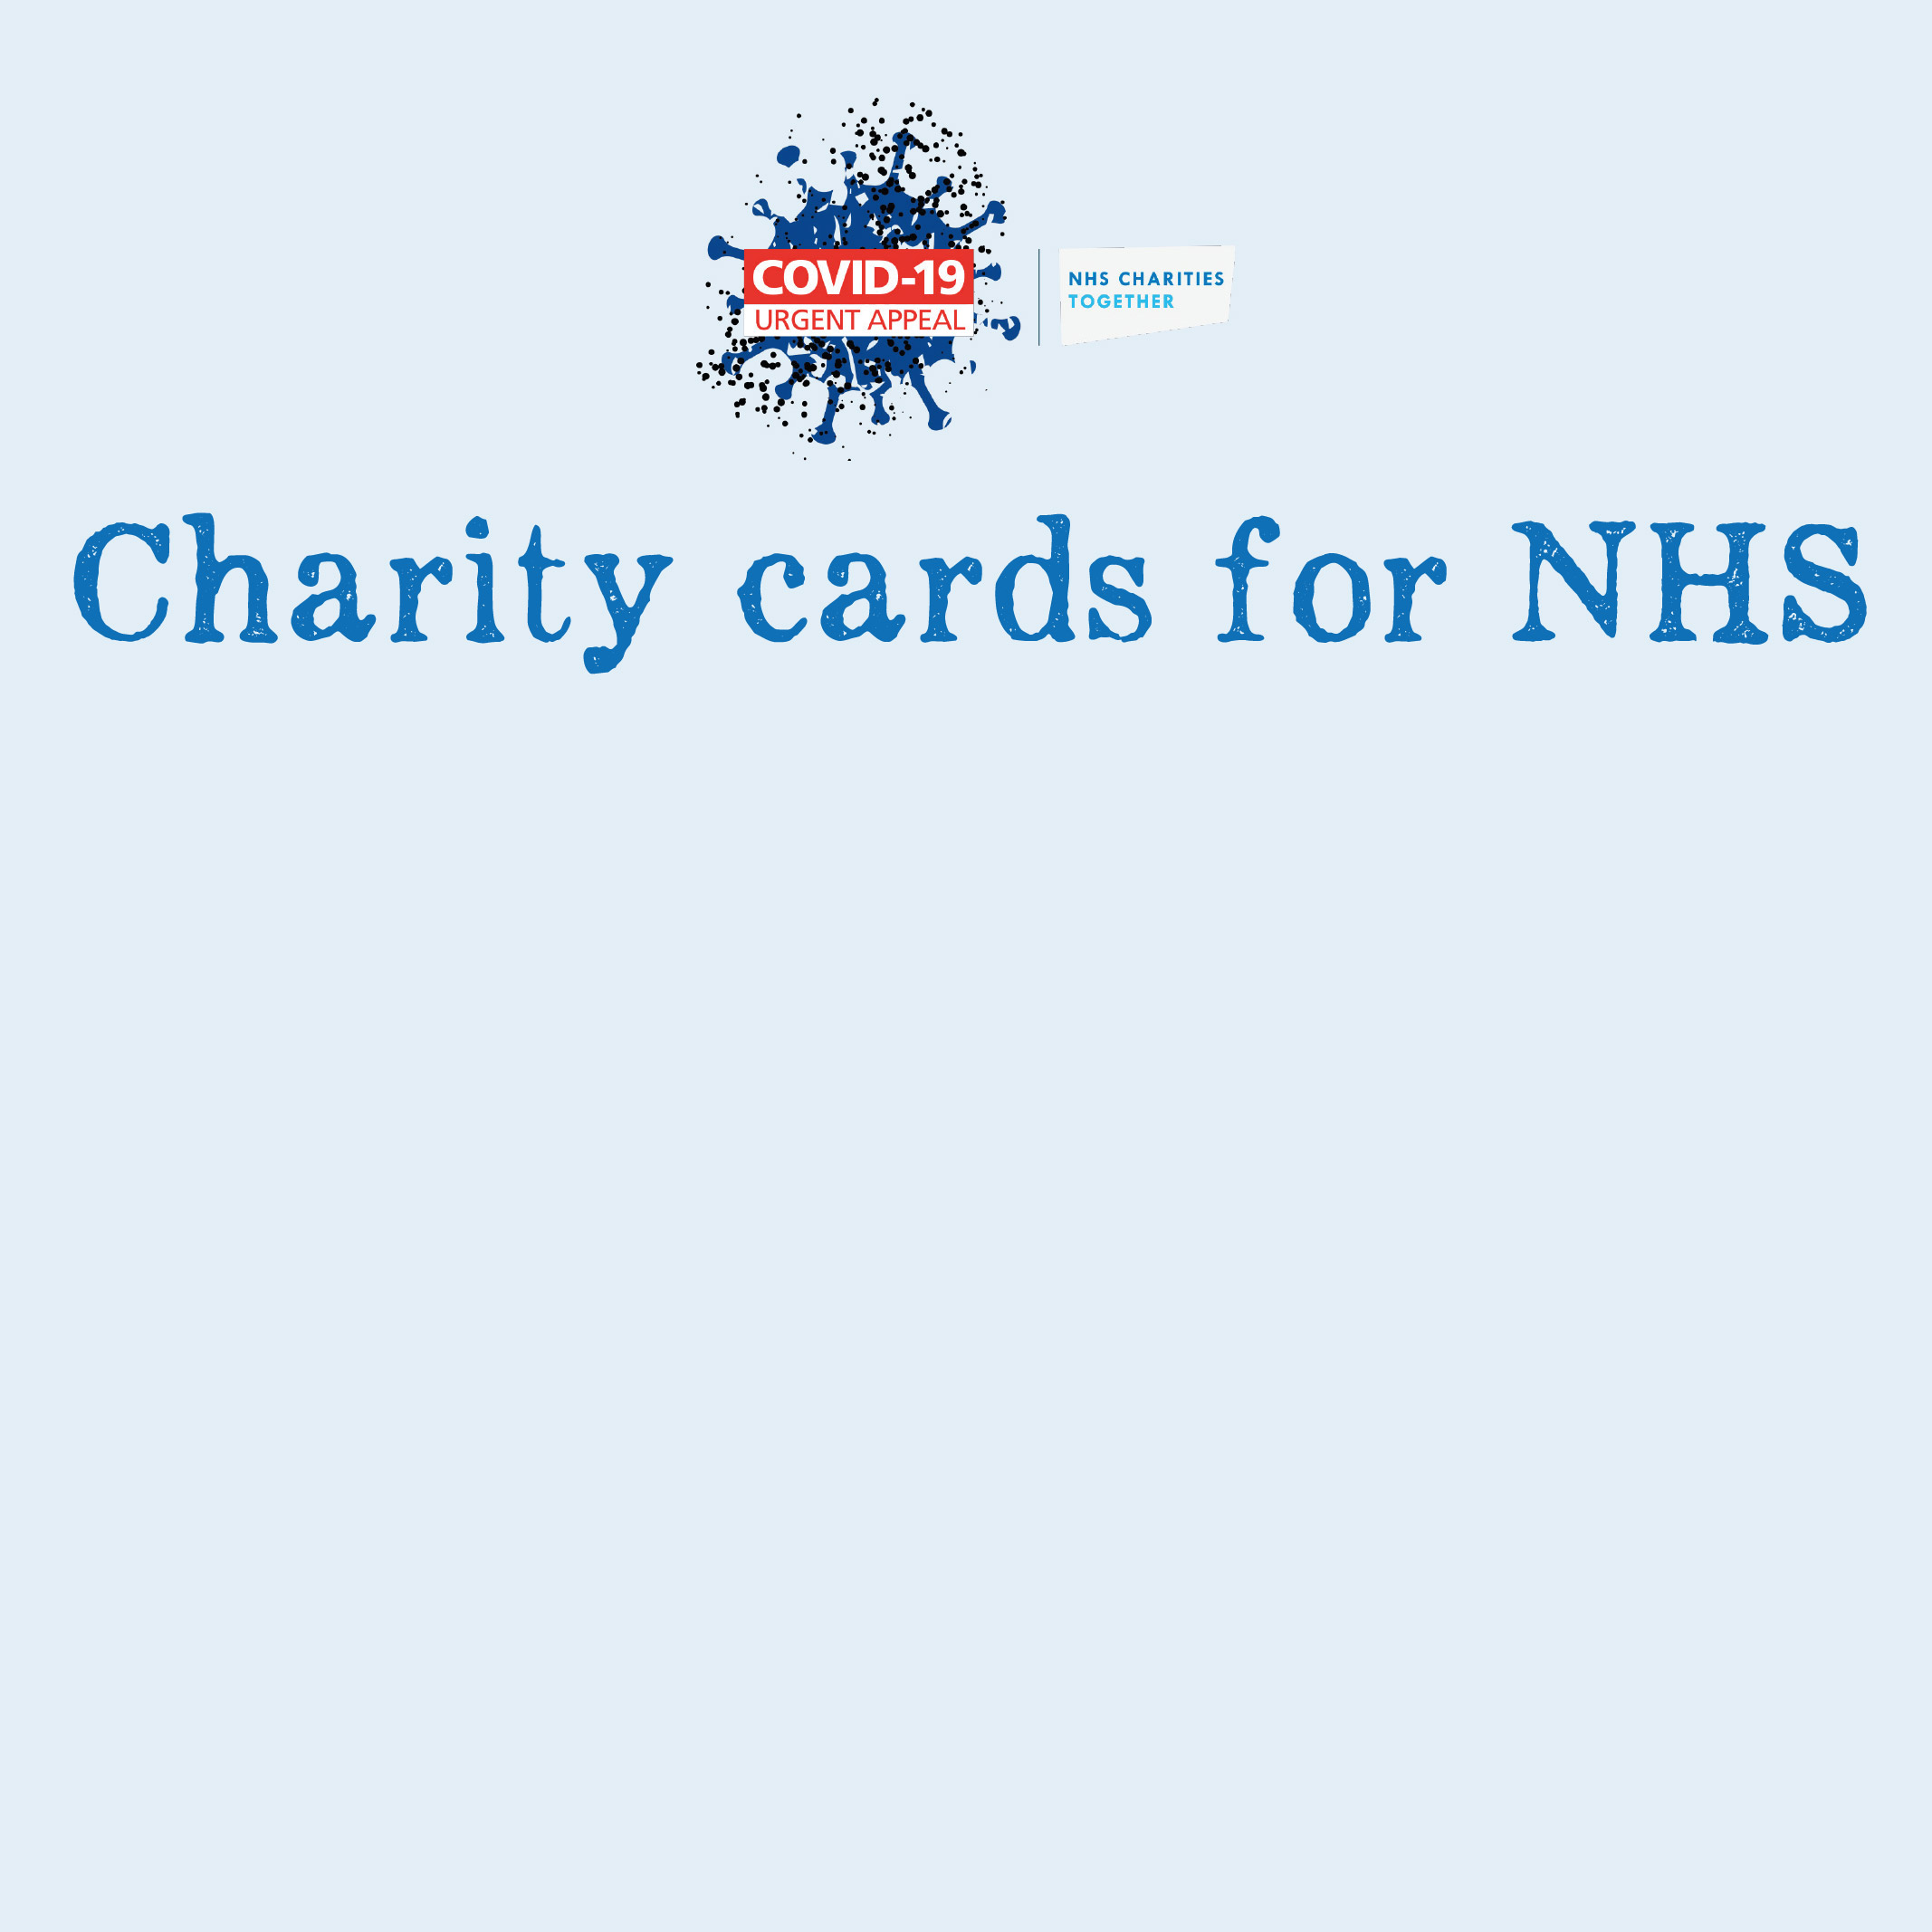 NHS Charity Cards